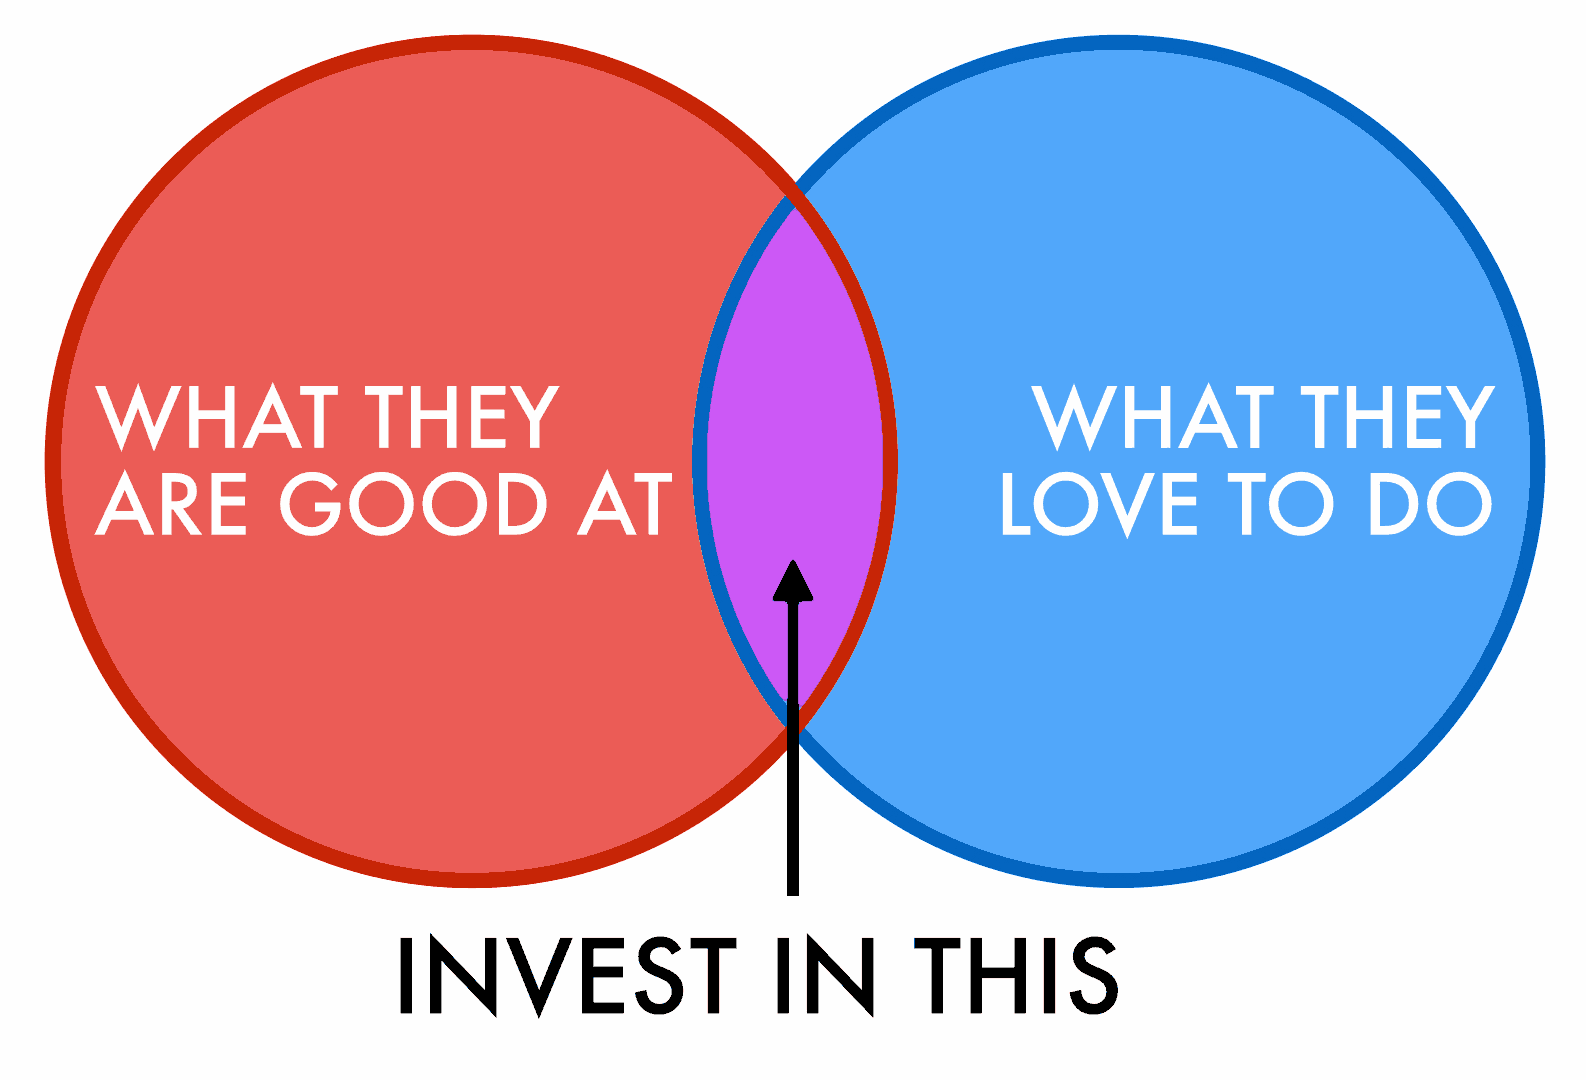 Invest in what they love and what they're good at